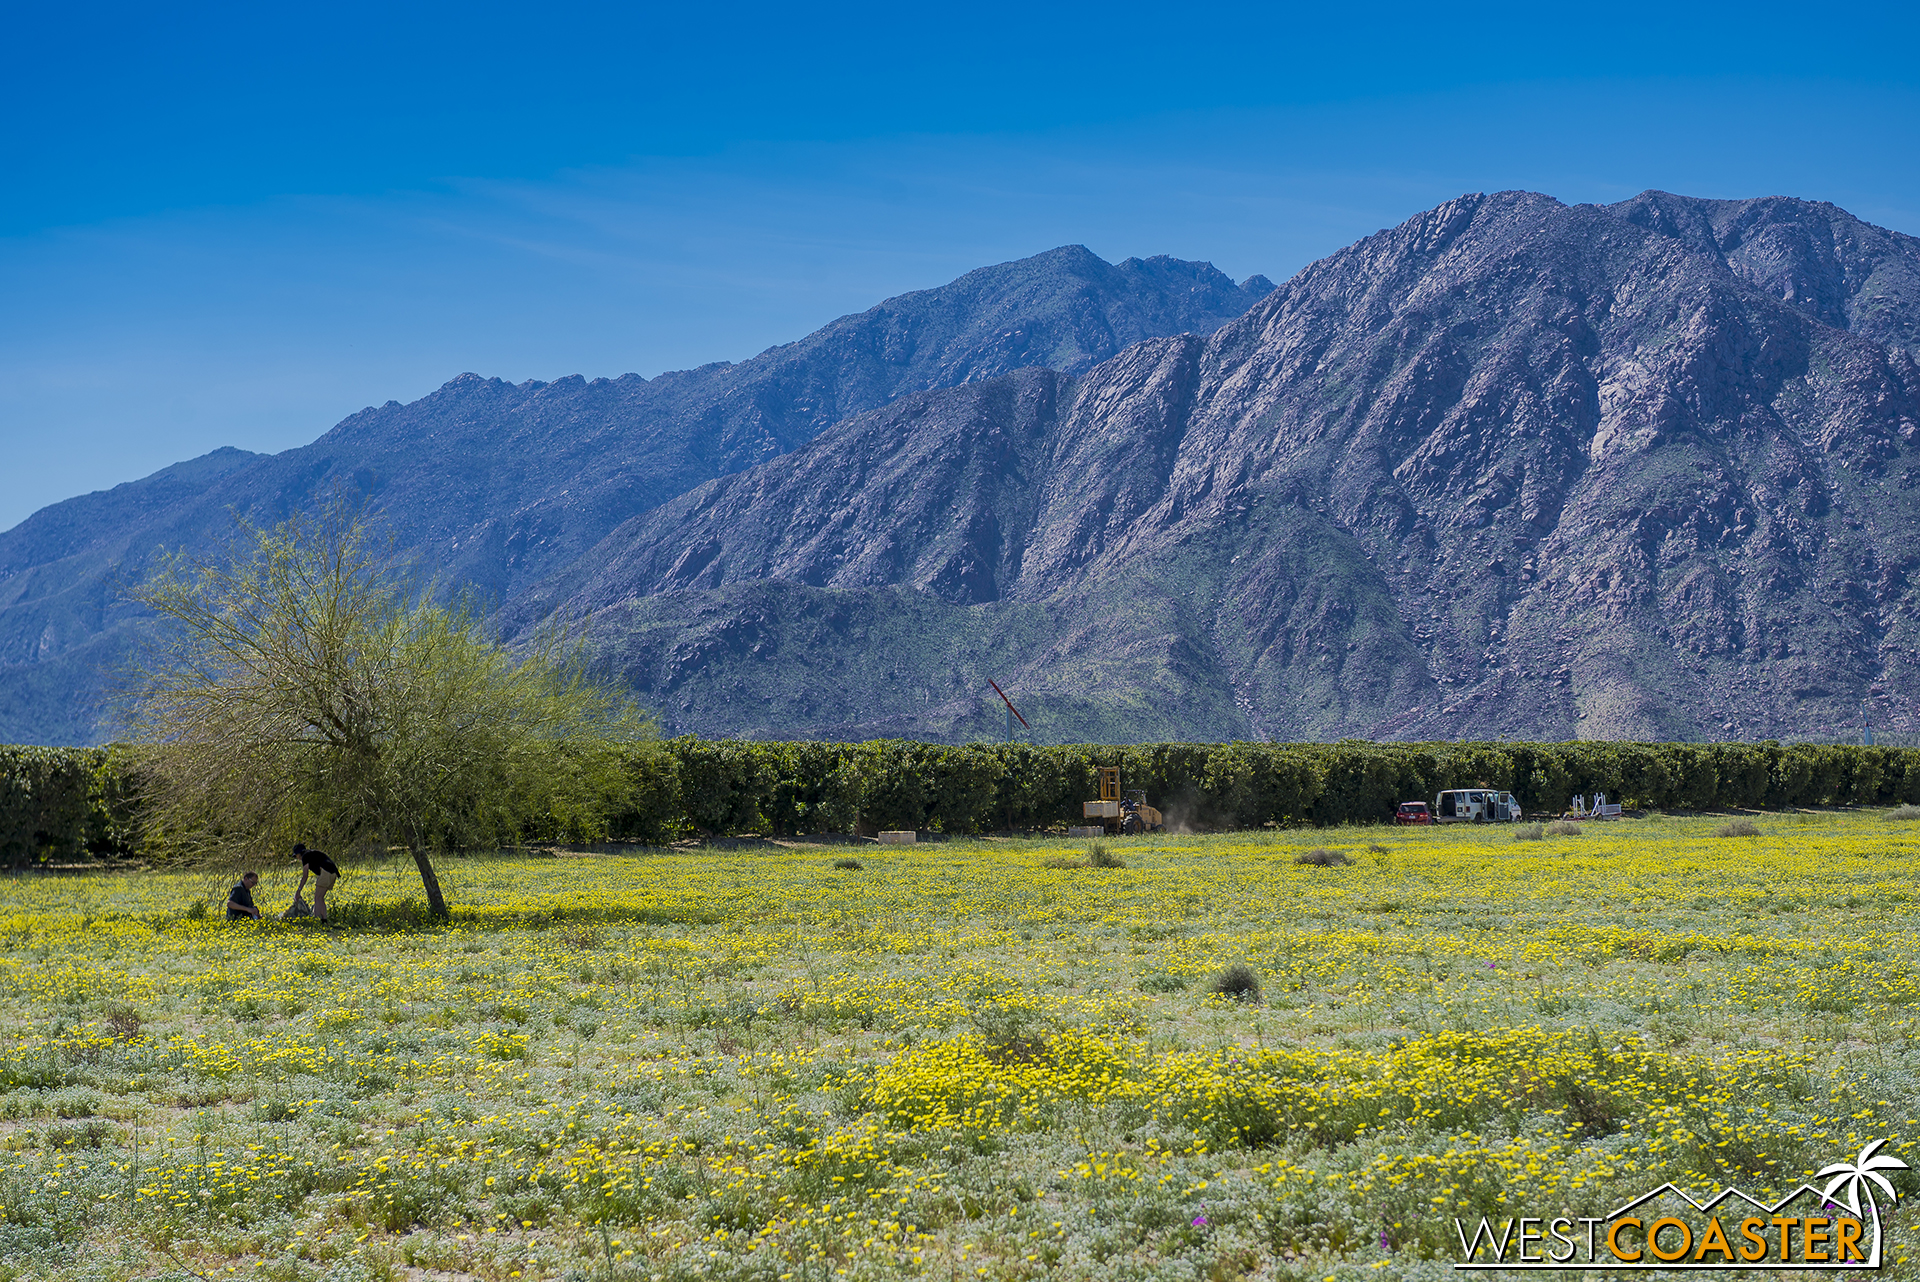 The mountain backdrop of Anza Borrego State Park is spectacular.